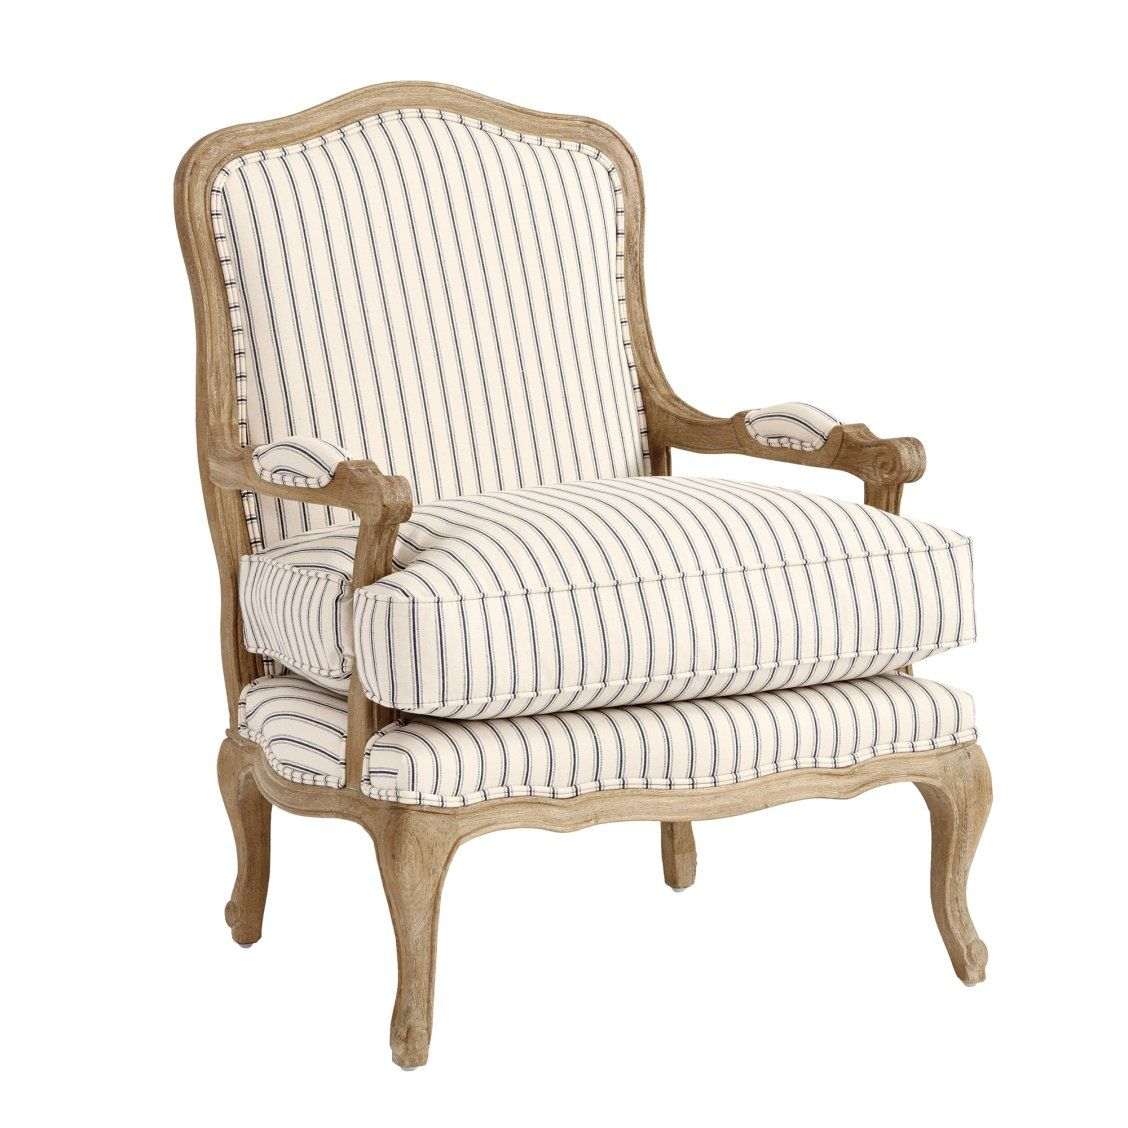 The Louisa Bergere Chair In Vintage Ticking Stripe Navy Is A